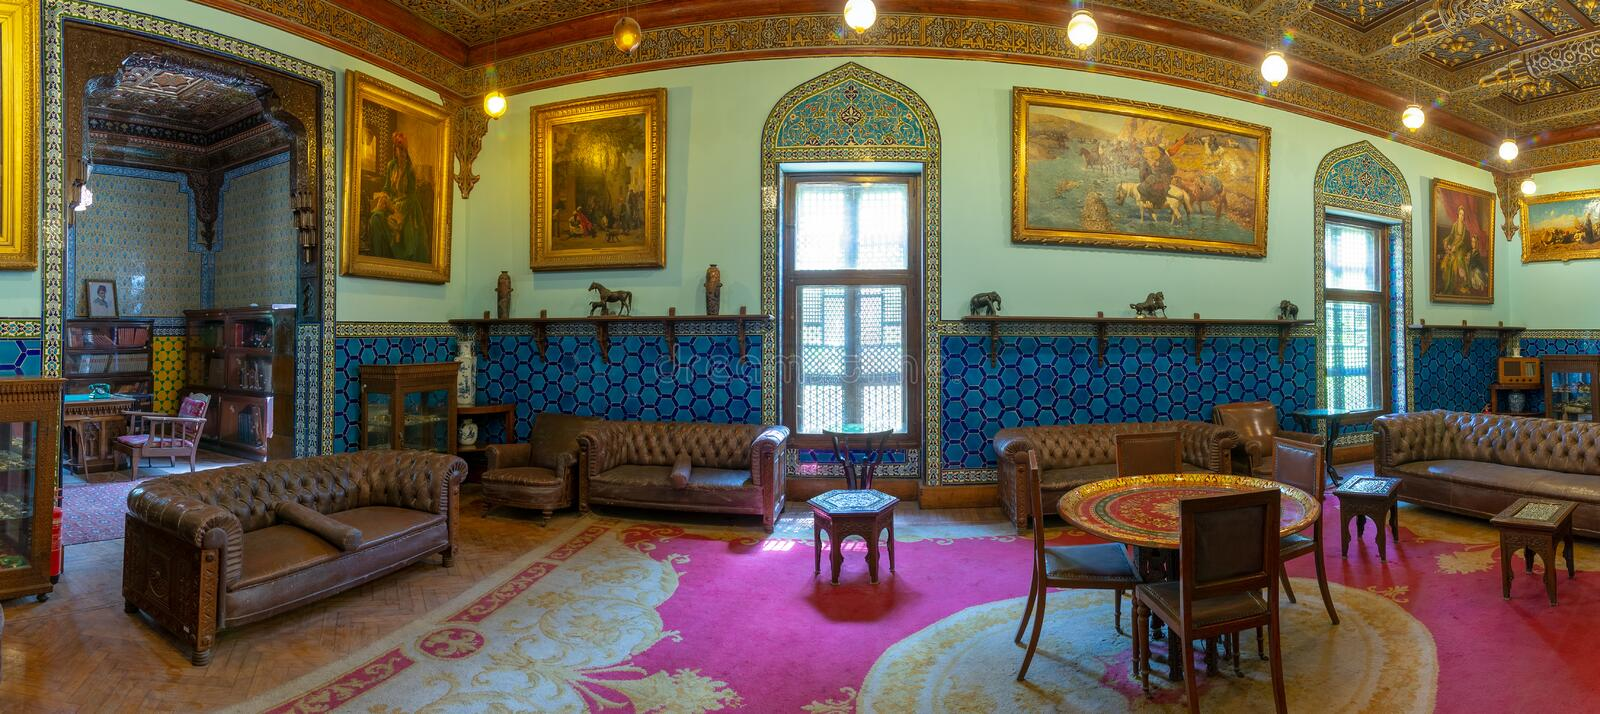 Manial Palace of Prince Mohammed Ali. Living room at the residence building with Turkish floral blue ceramic tiles, Cairo, Egypt. Manial Palace of Prince royalty free stock images